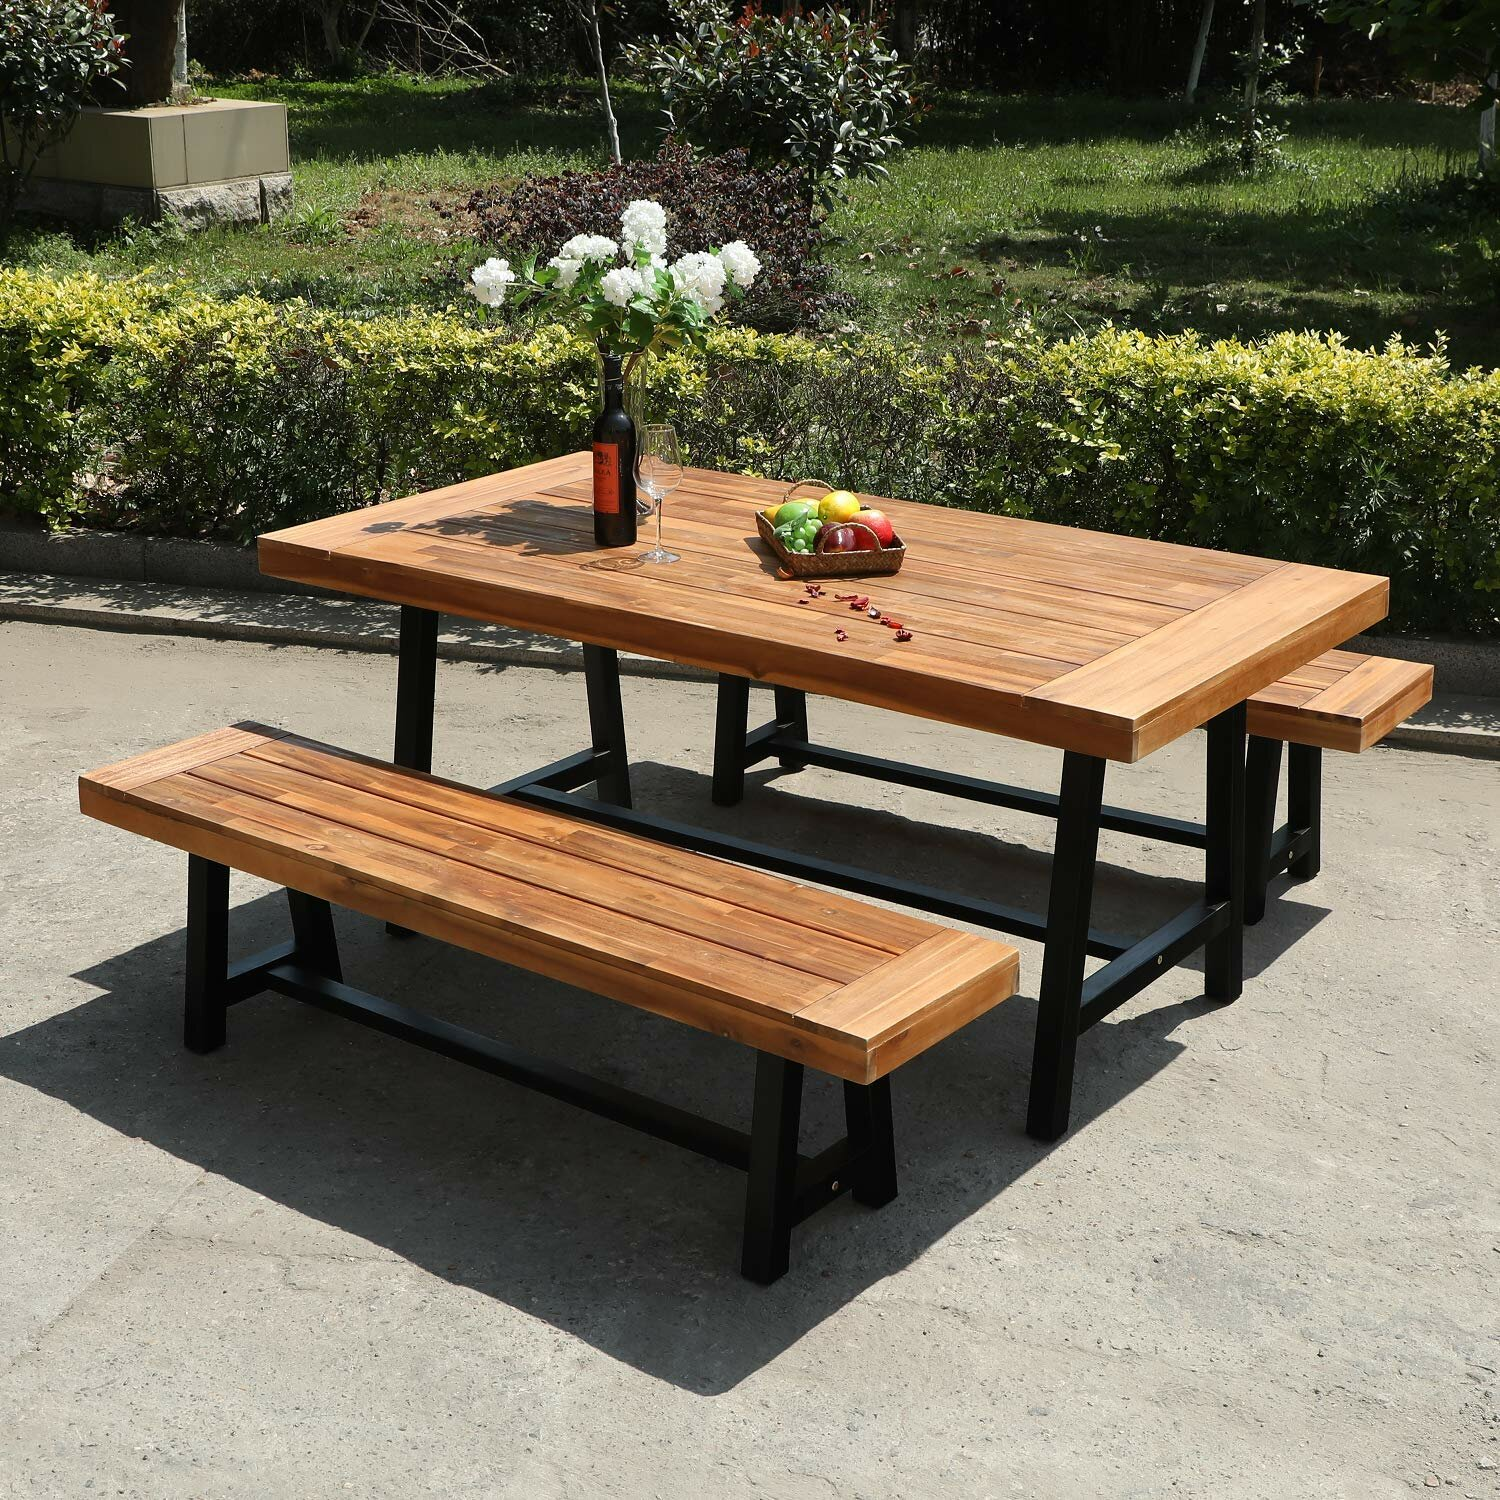 Gracie Oaks Outdoor Patio 3 Pieces Wooden Dining With 1 Table And 2 Benches Oil Finished Acacia Wood Table And Bench Set For Indoor Patio Porch Modern Outdoor Dining Furniture Teak Colour Wayfair Ca